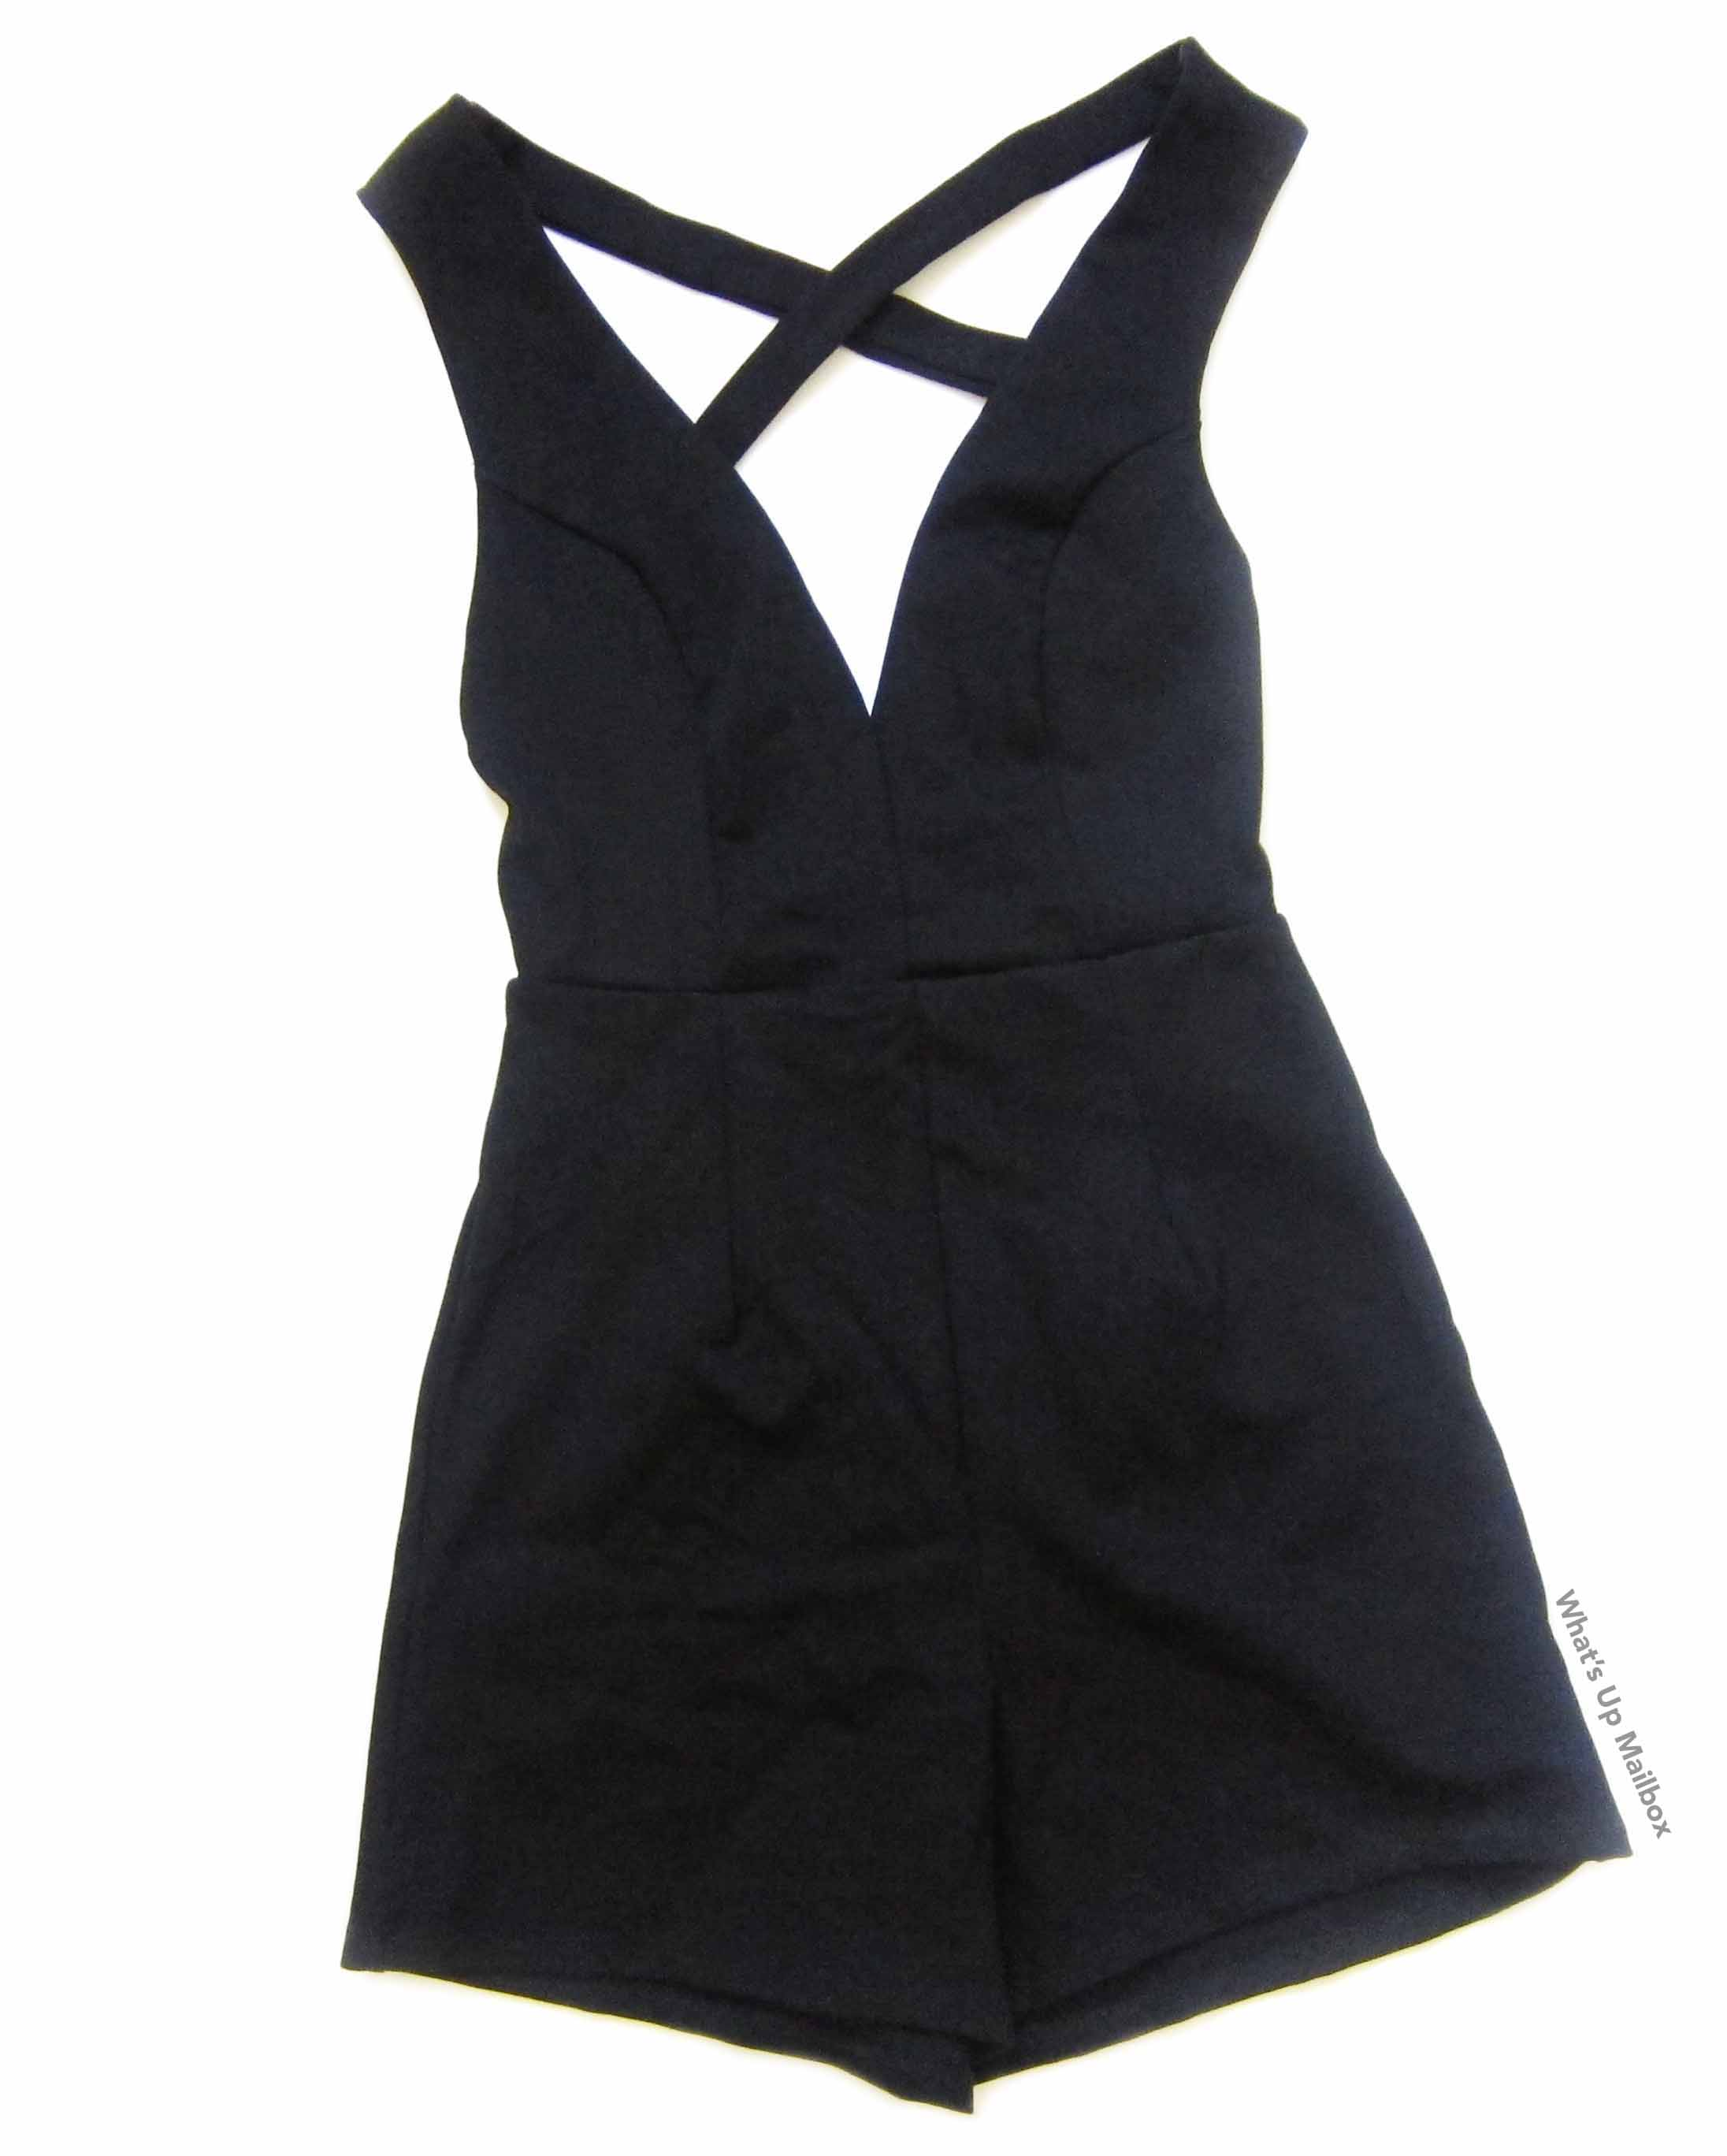 Square Hearts June 2016 Black Romper